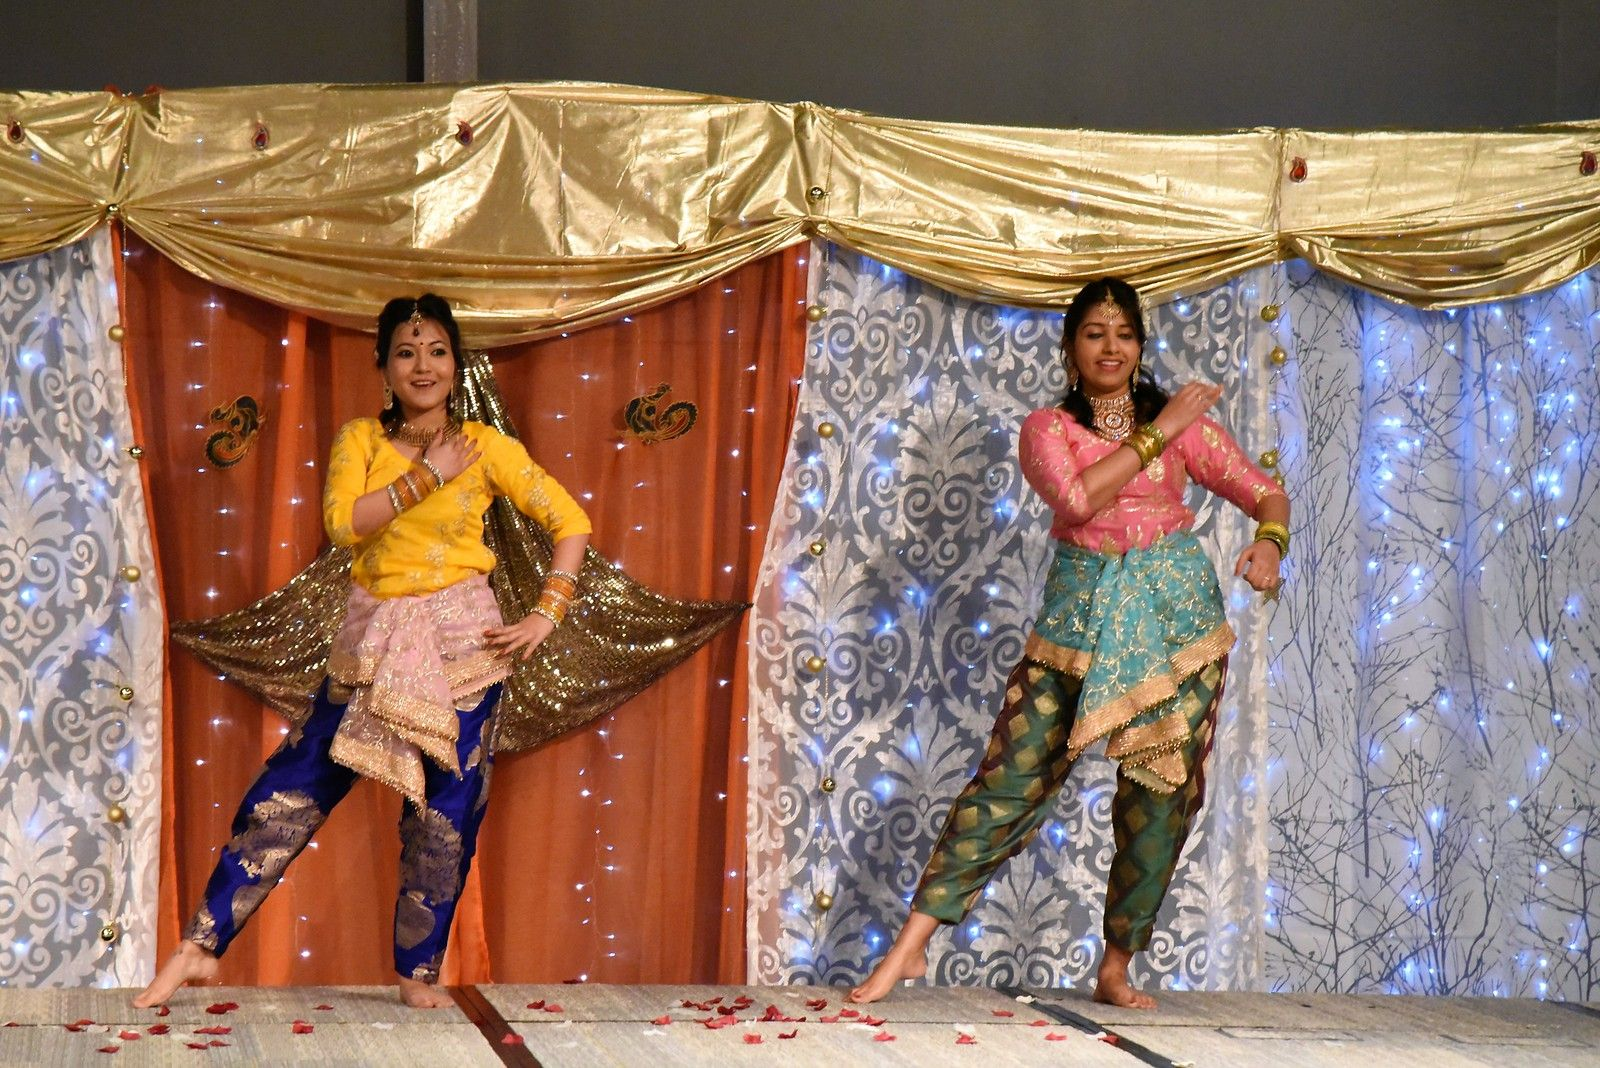 Traditional Indian dancing performance by HPE employees